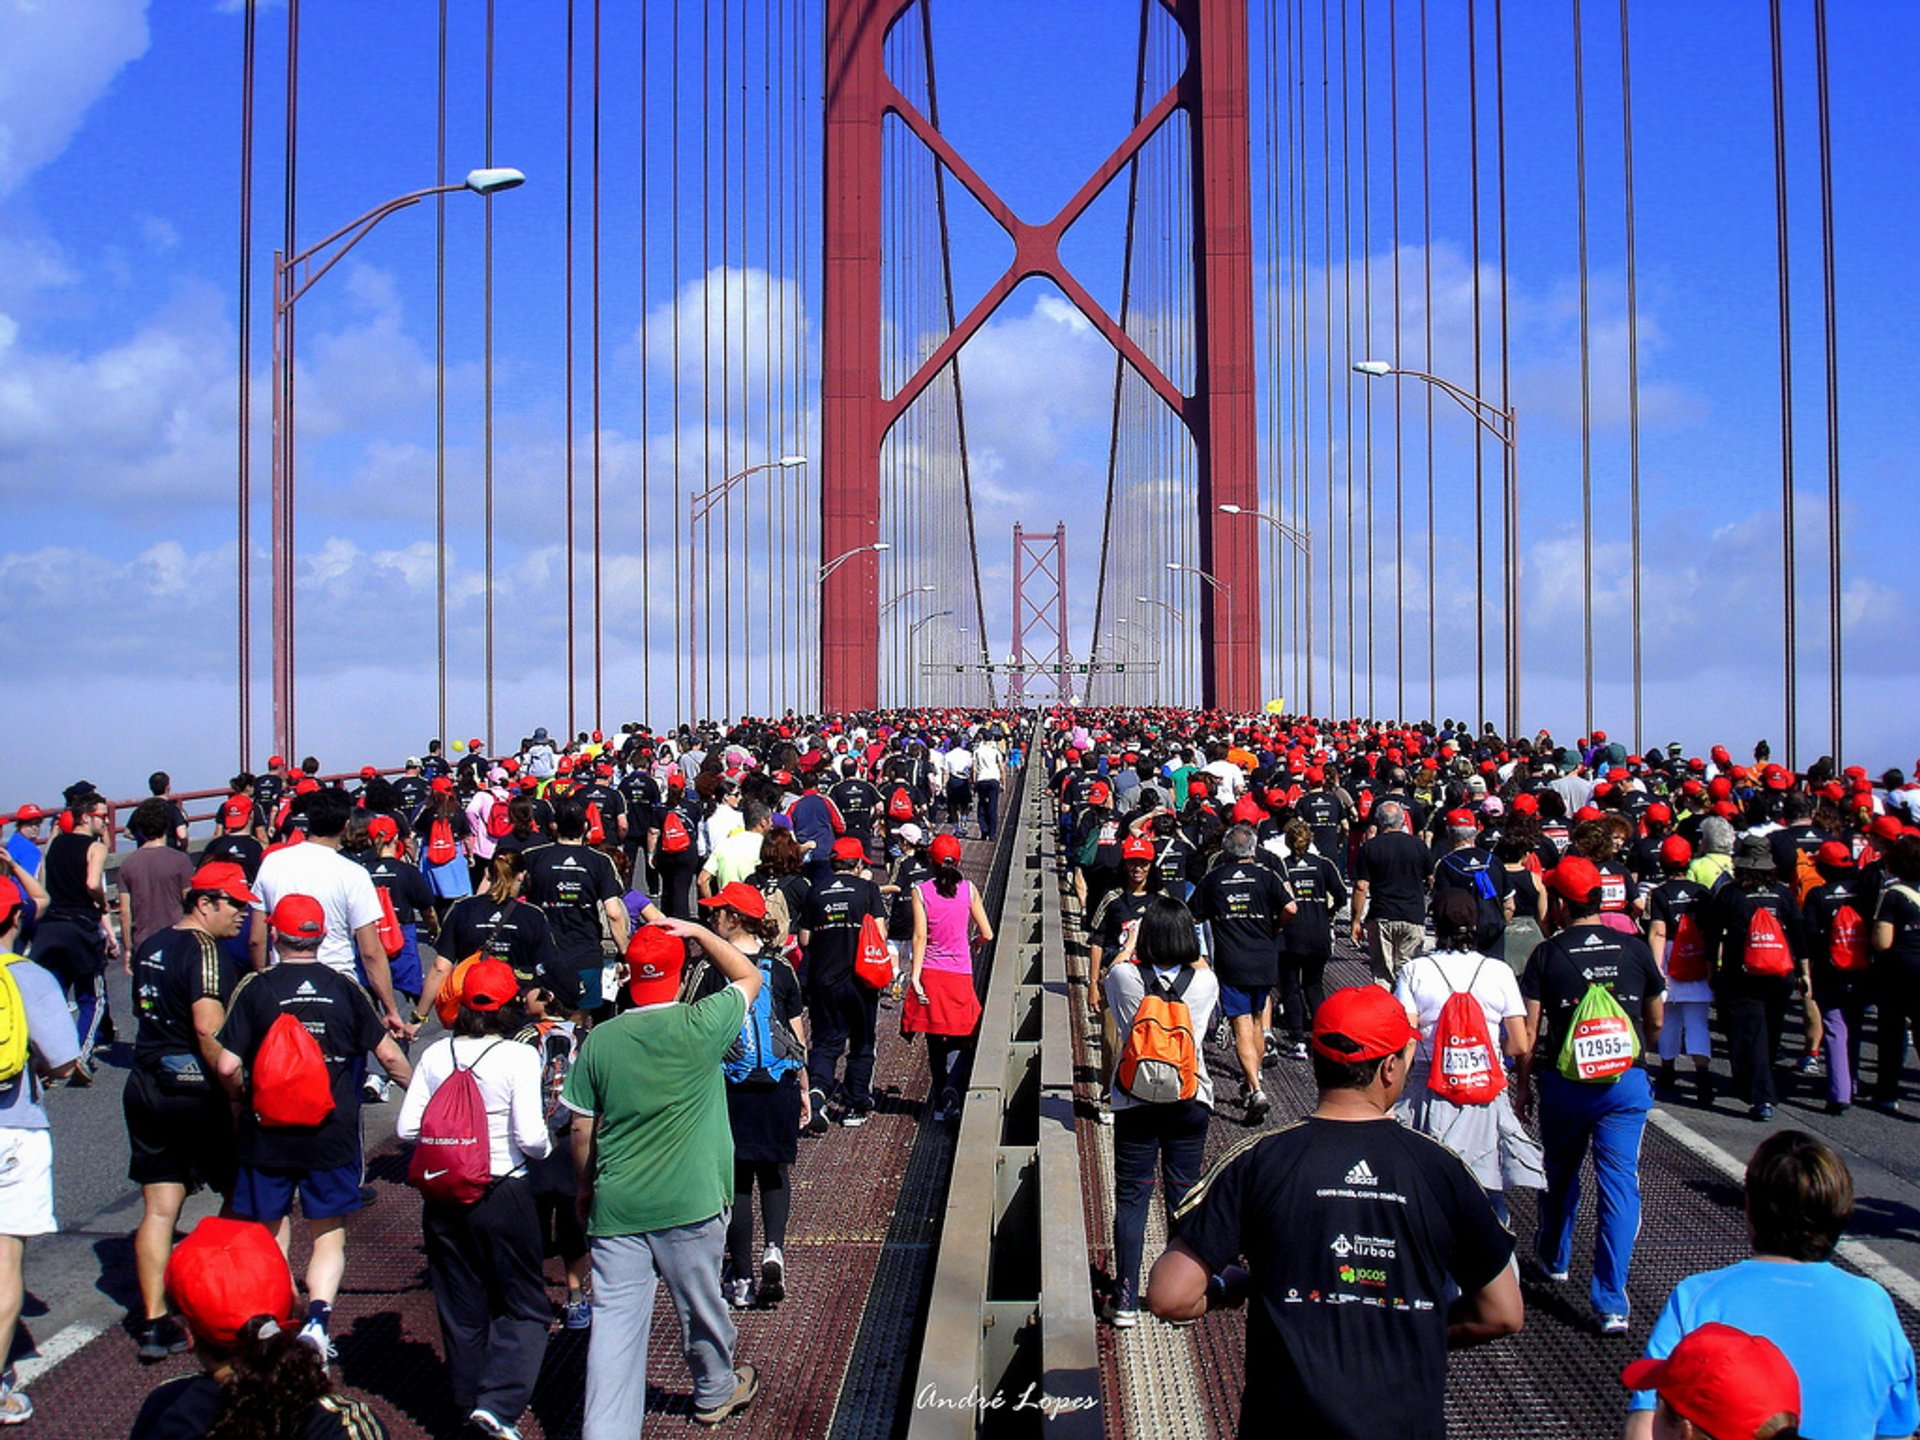 Meia Maratona de Lisboa or Lisbon Half Marathon in Portugal - Best Time